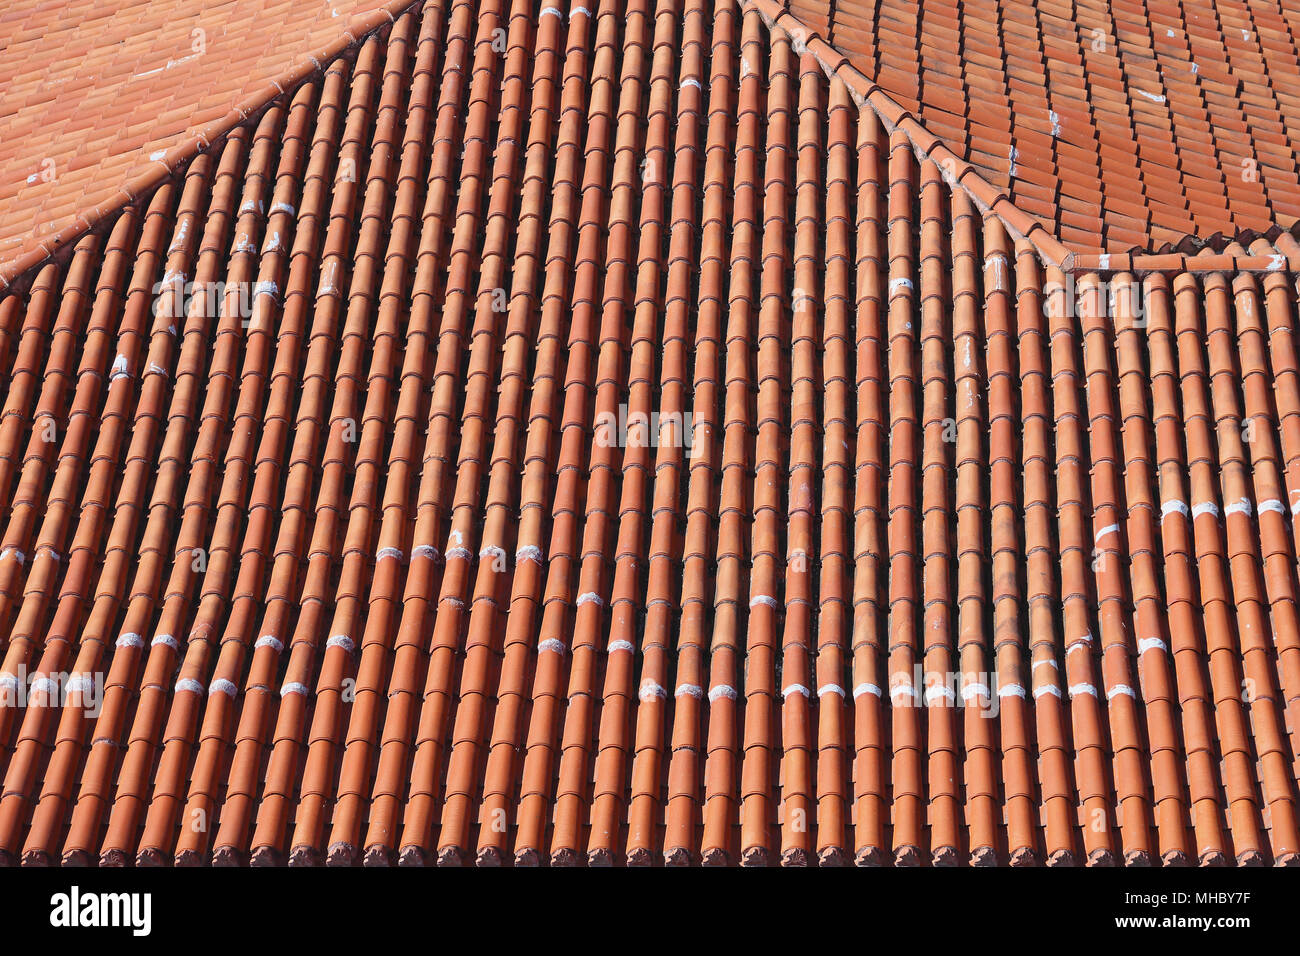 Terracotta Ceramic Roof Tiles From Above Stock Photo 182815683 Alamy